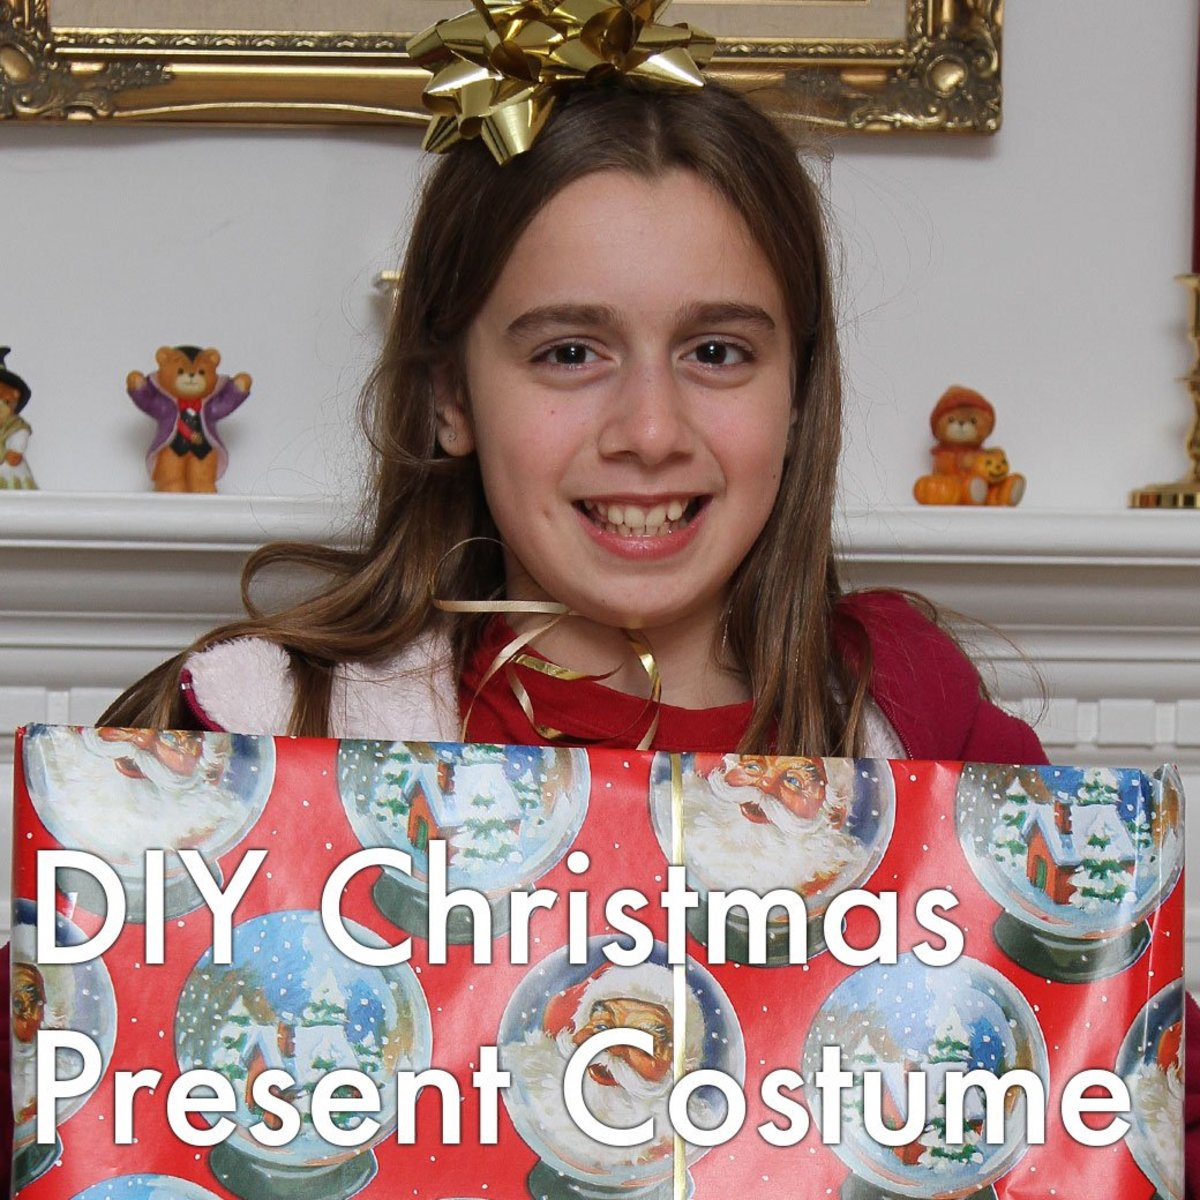 DIY Christmas present costume tutorial and ideas.